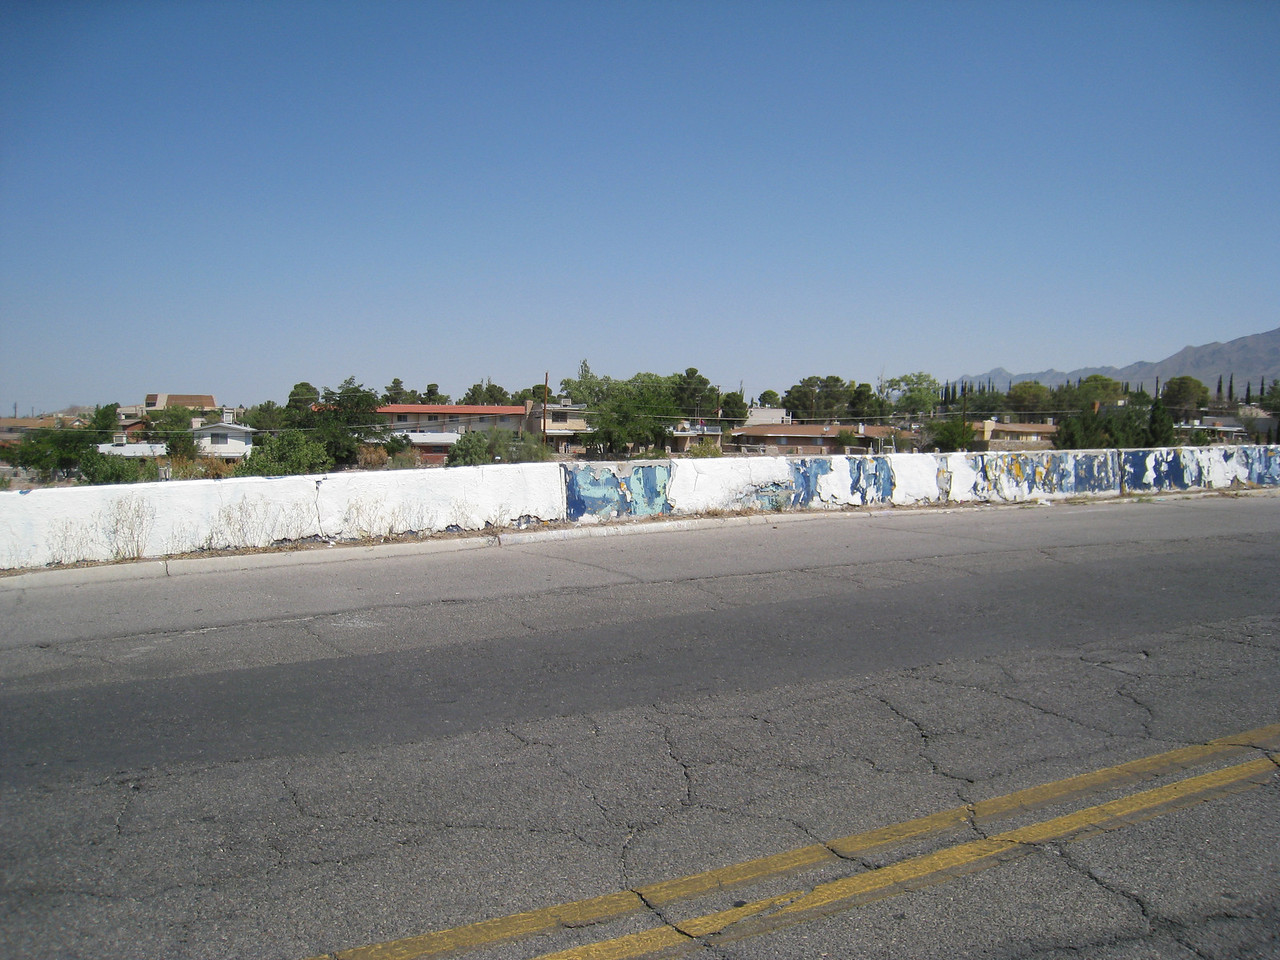 The famous wall across the street from Coronado. It has had many layers of paint over the years.